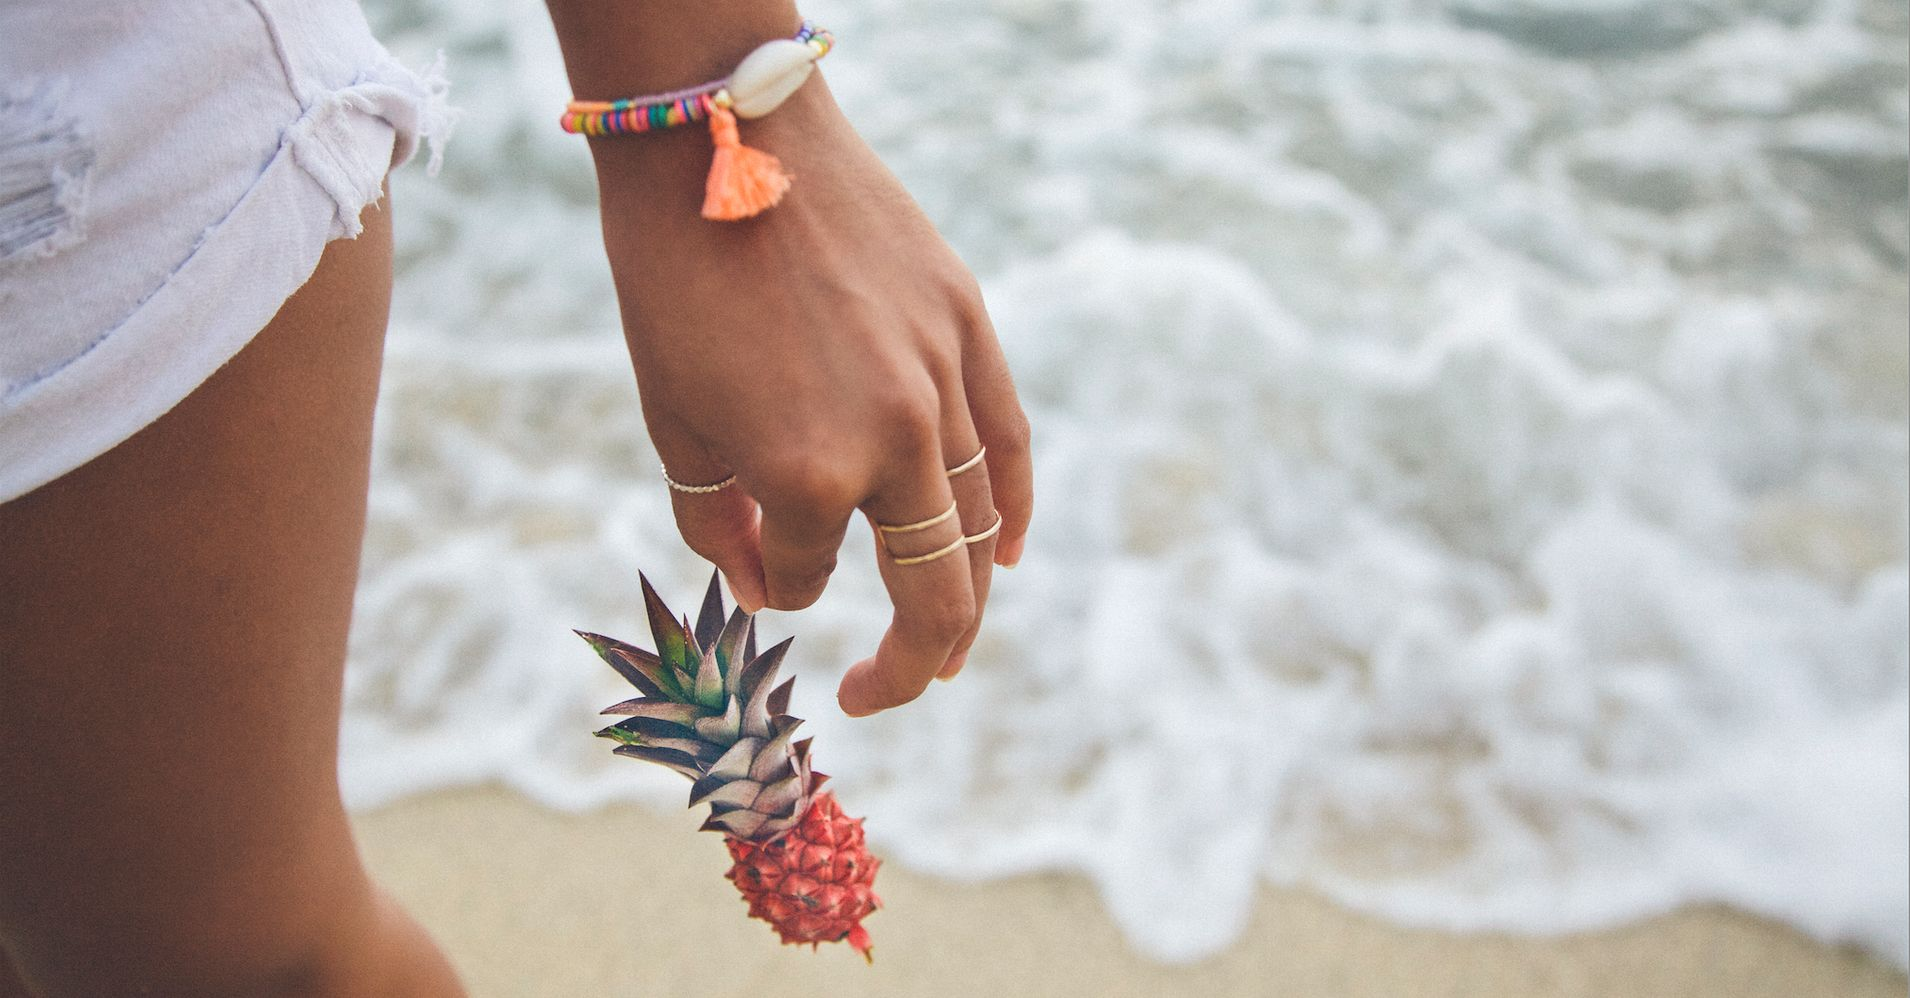 Mini Pineapples The Itty Bitty Bromeliads Poised To Steal Your